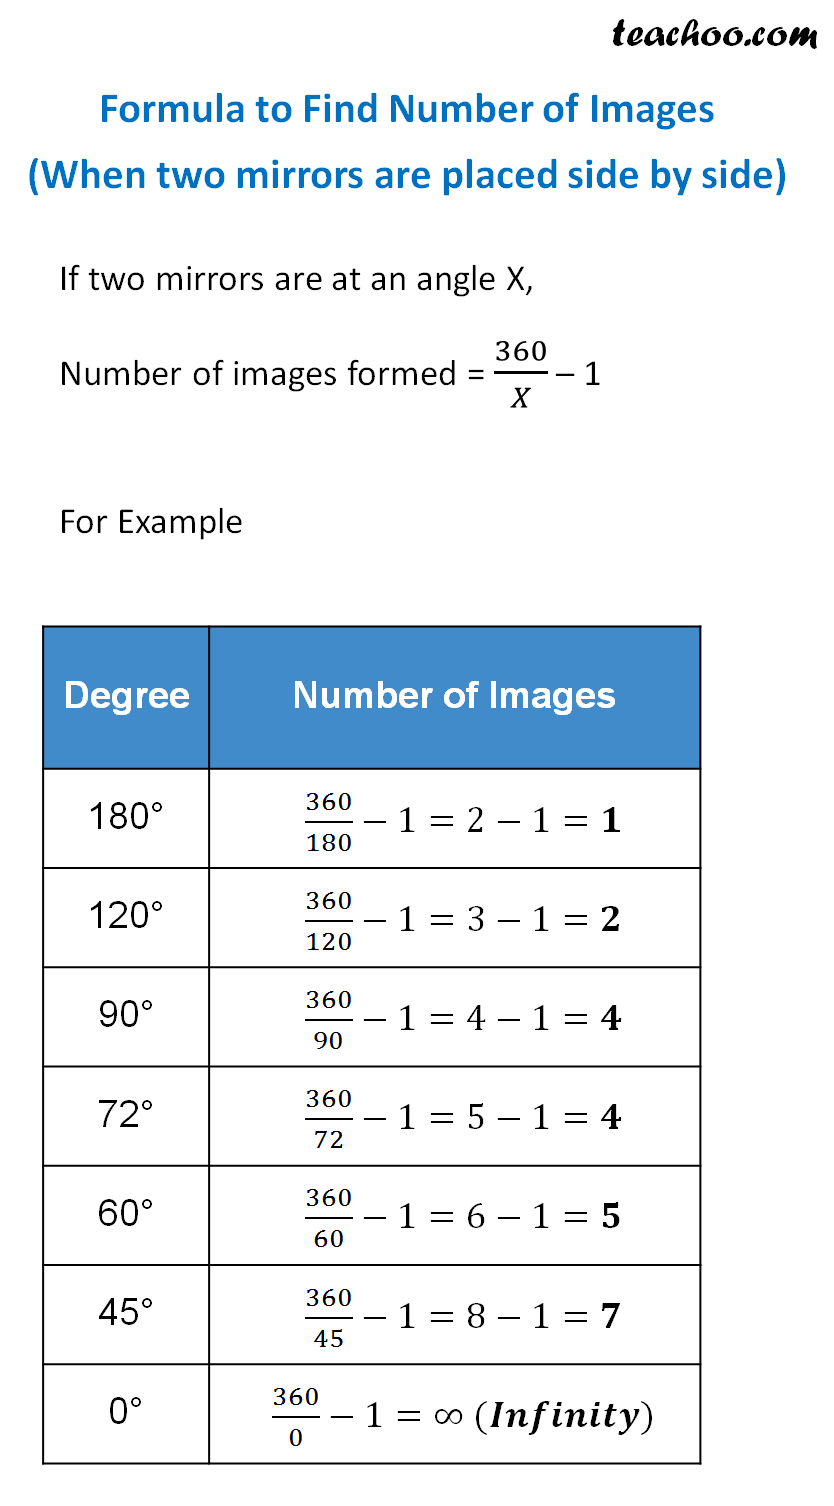 Formula to Find Number of Images (When two mirrors are placed side by side).png